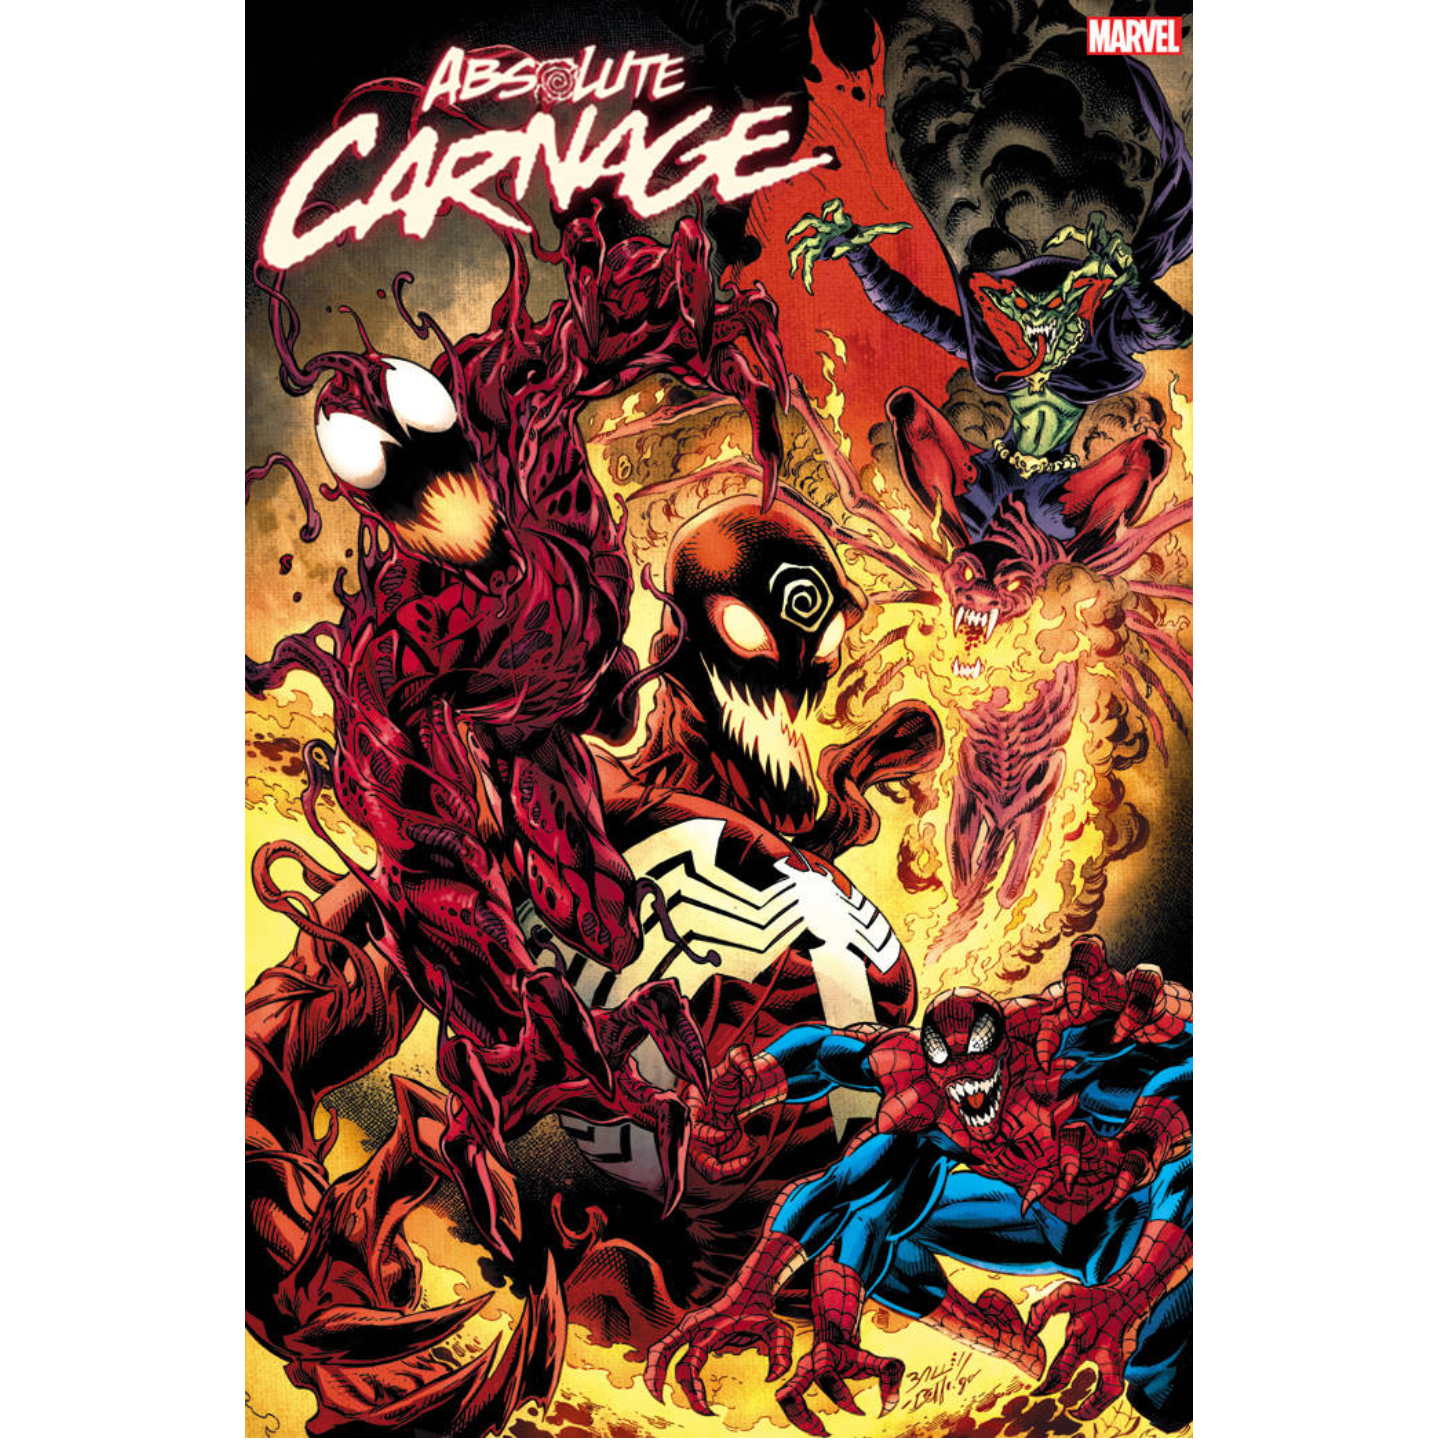 ABSOLUTE CARNAGE #5 - CULT OF CARNAGE VARIANT - BAGLEY